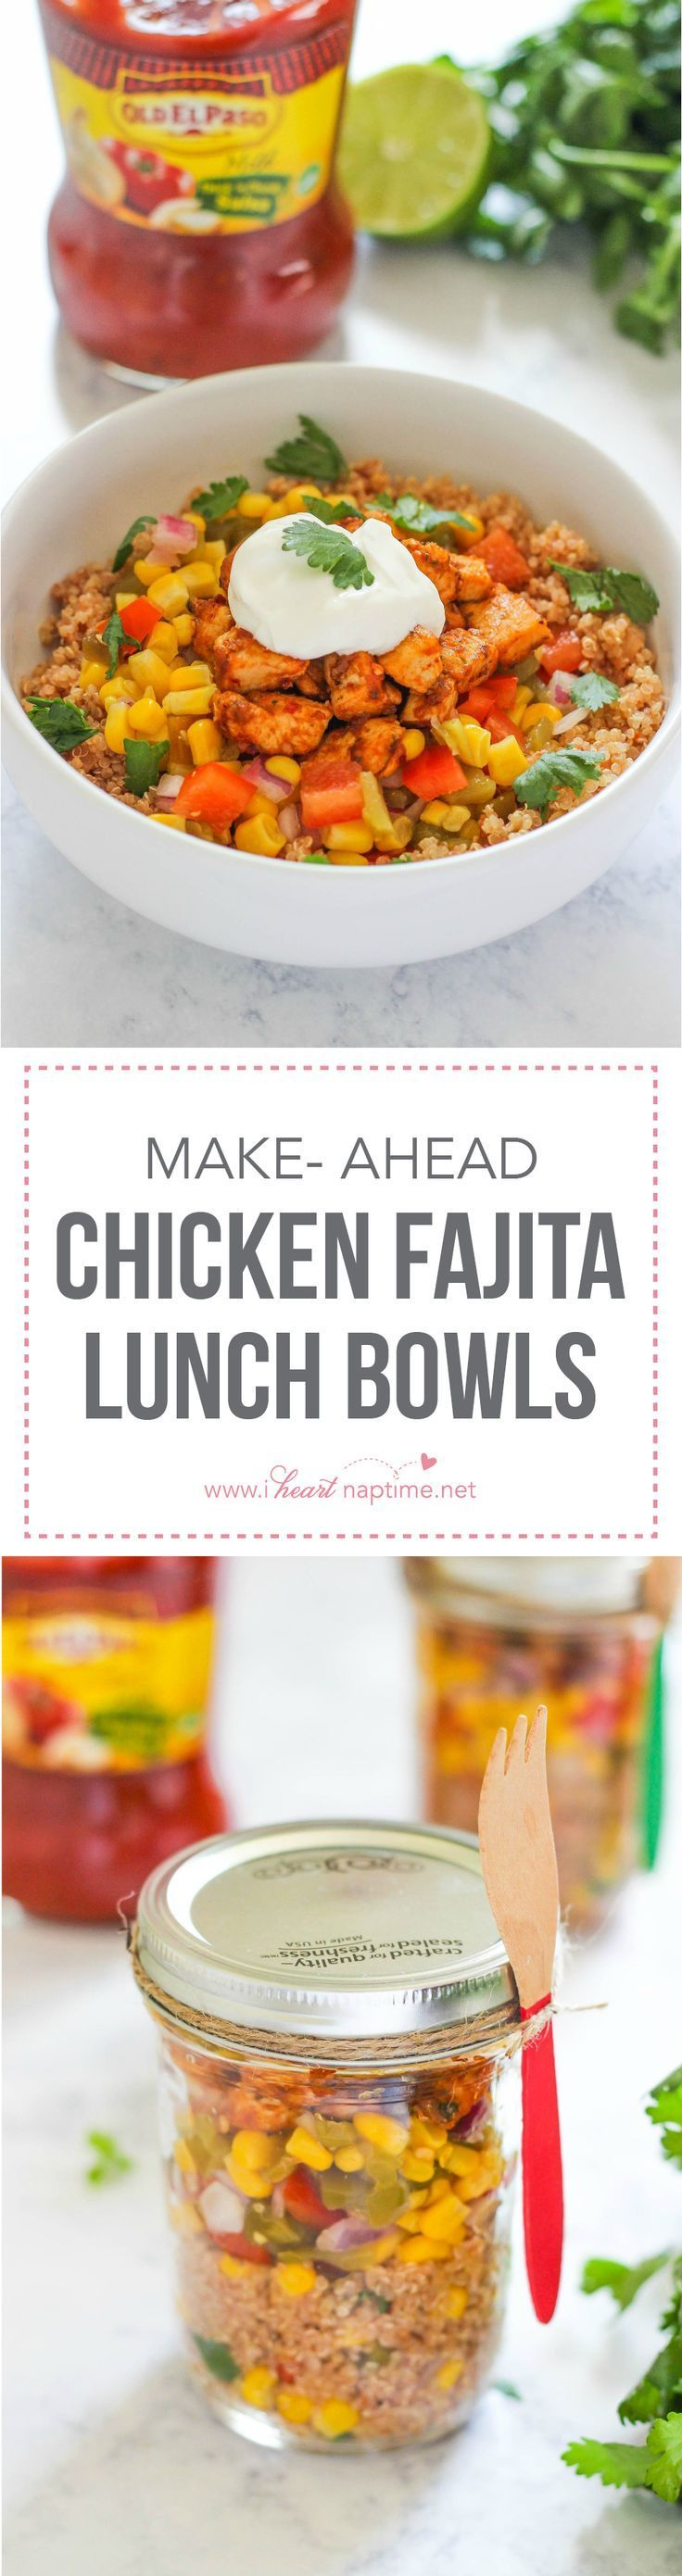 Make-Ahead Chicken Fajita Lunch Bowls are an easy and healthy recipe ...